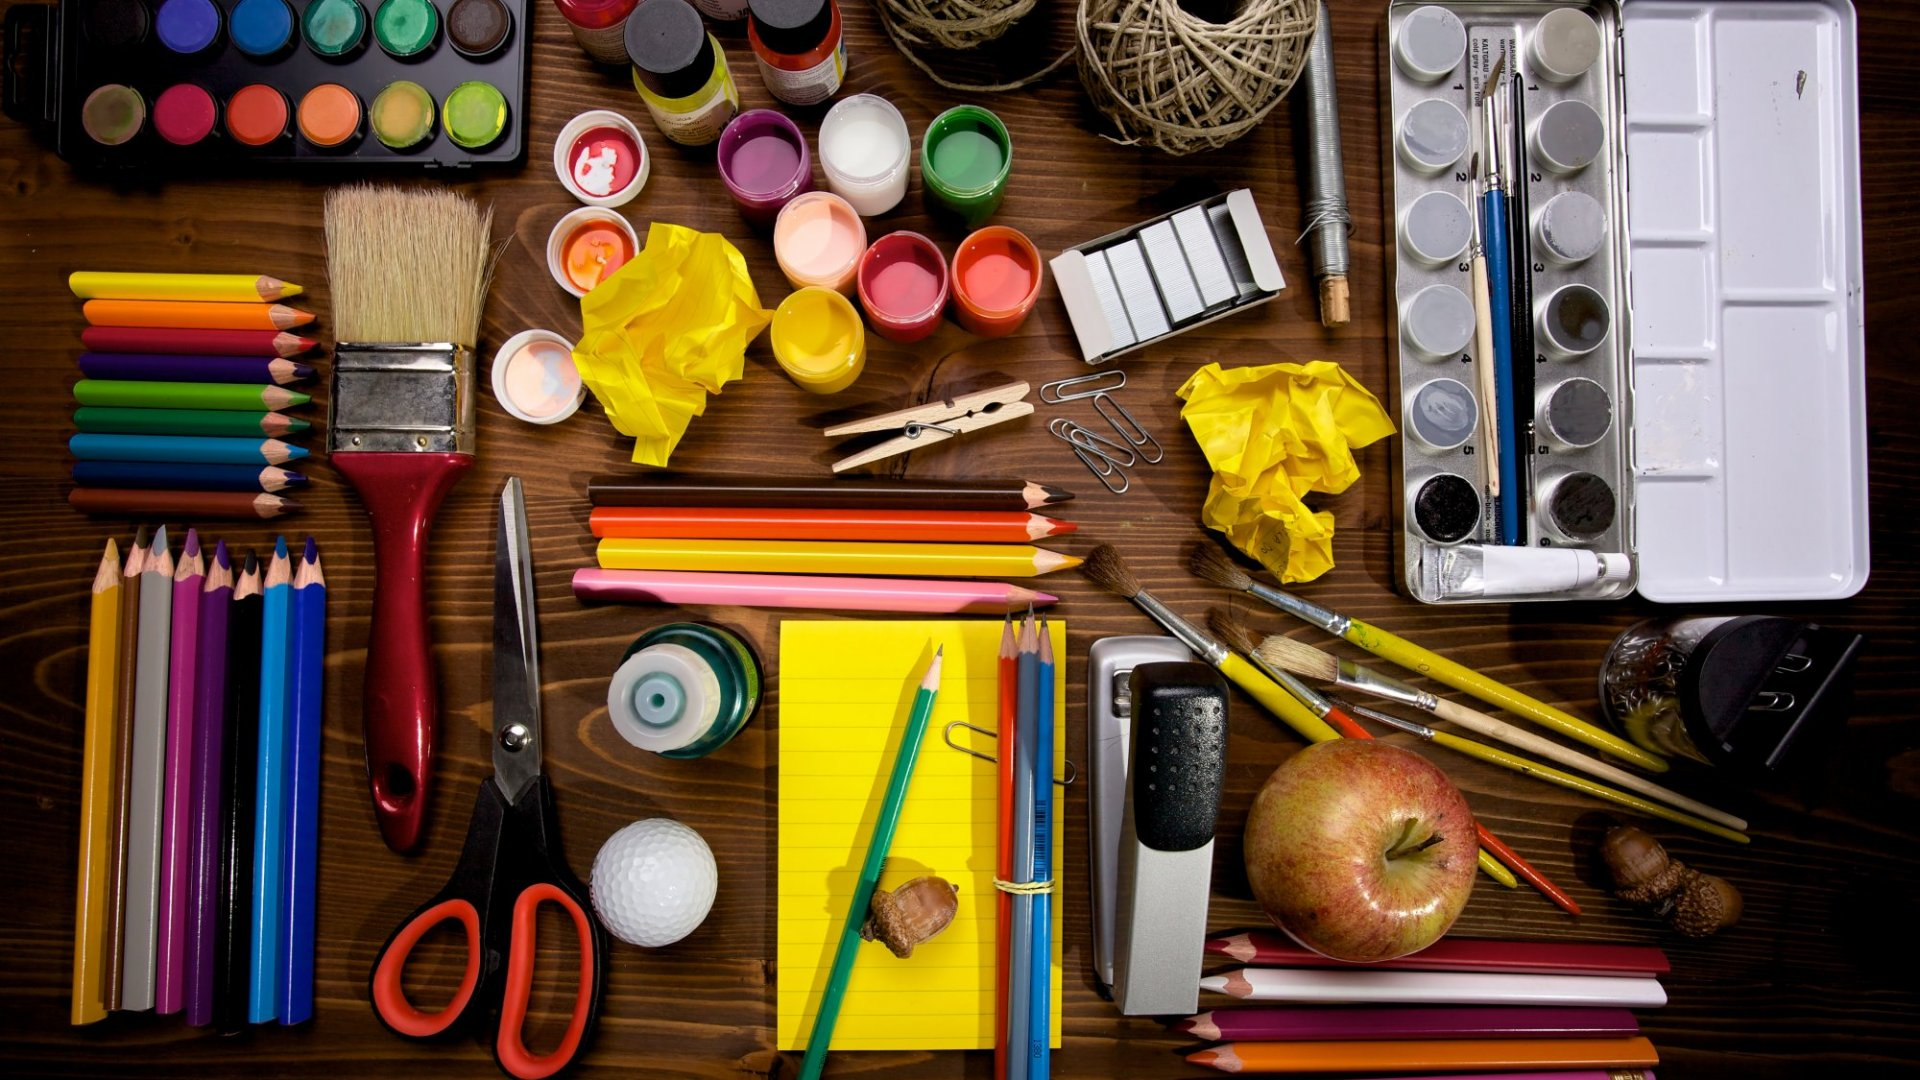 Craft and teacher supplies are about to cost even more, thanks to the China trade war.